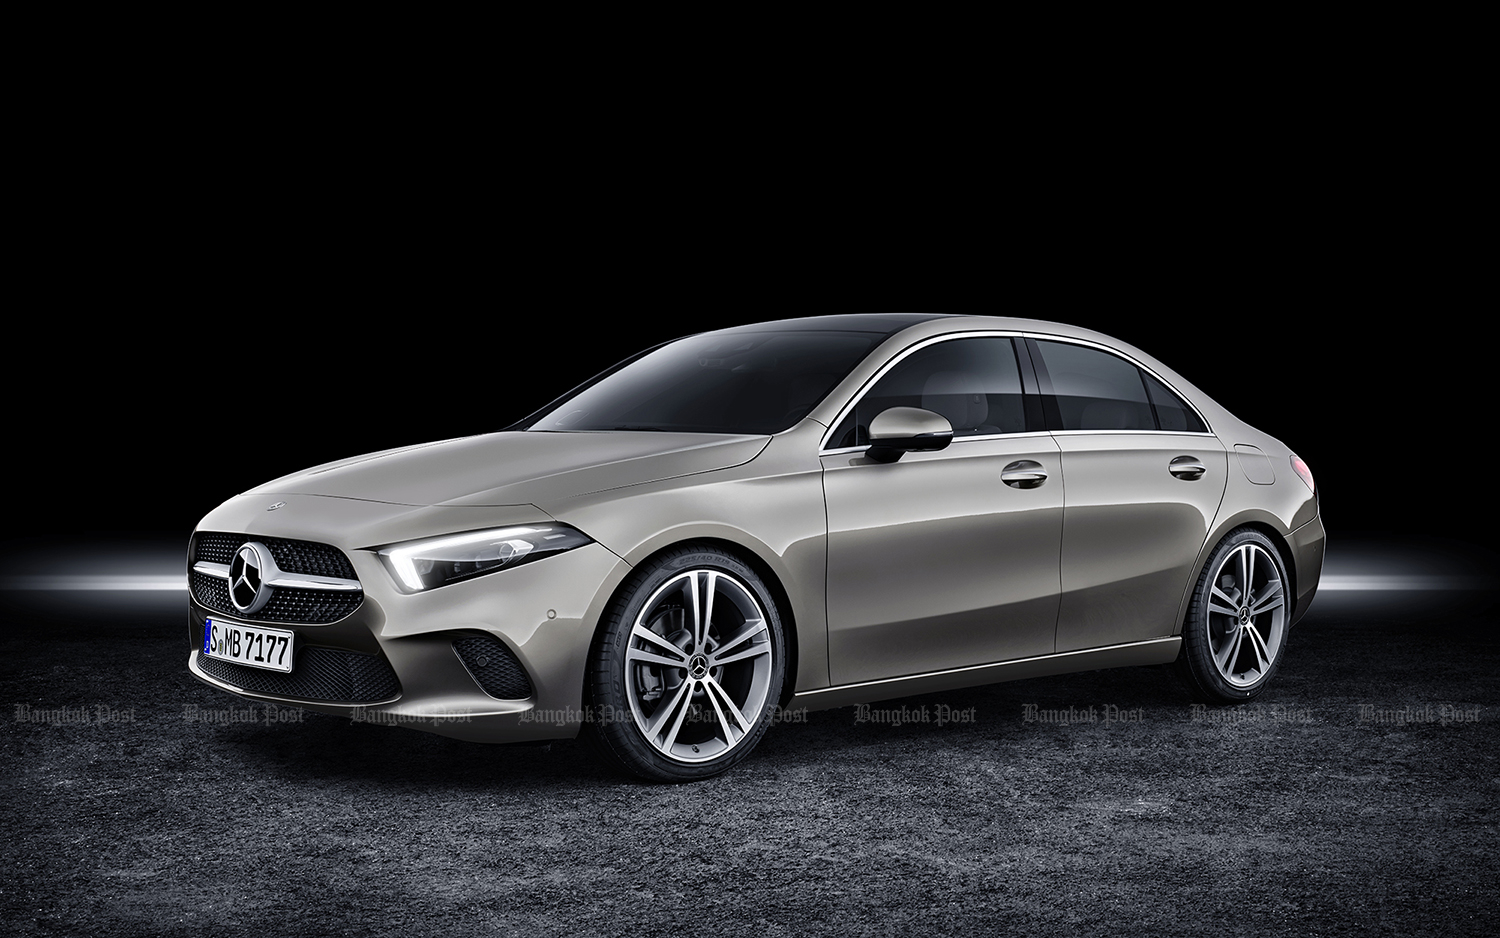 2019 Mercedes-Benz A200 Sedan: Thai price and specs